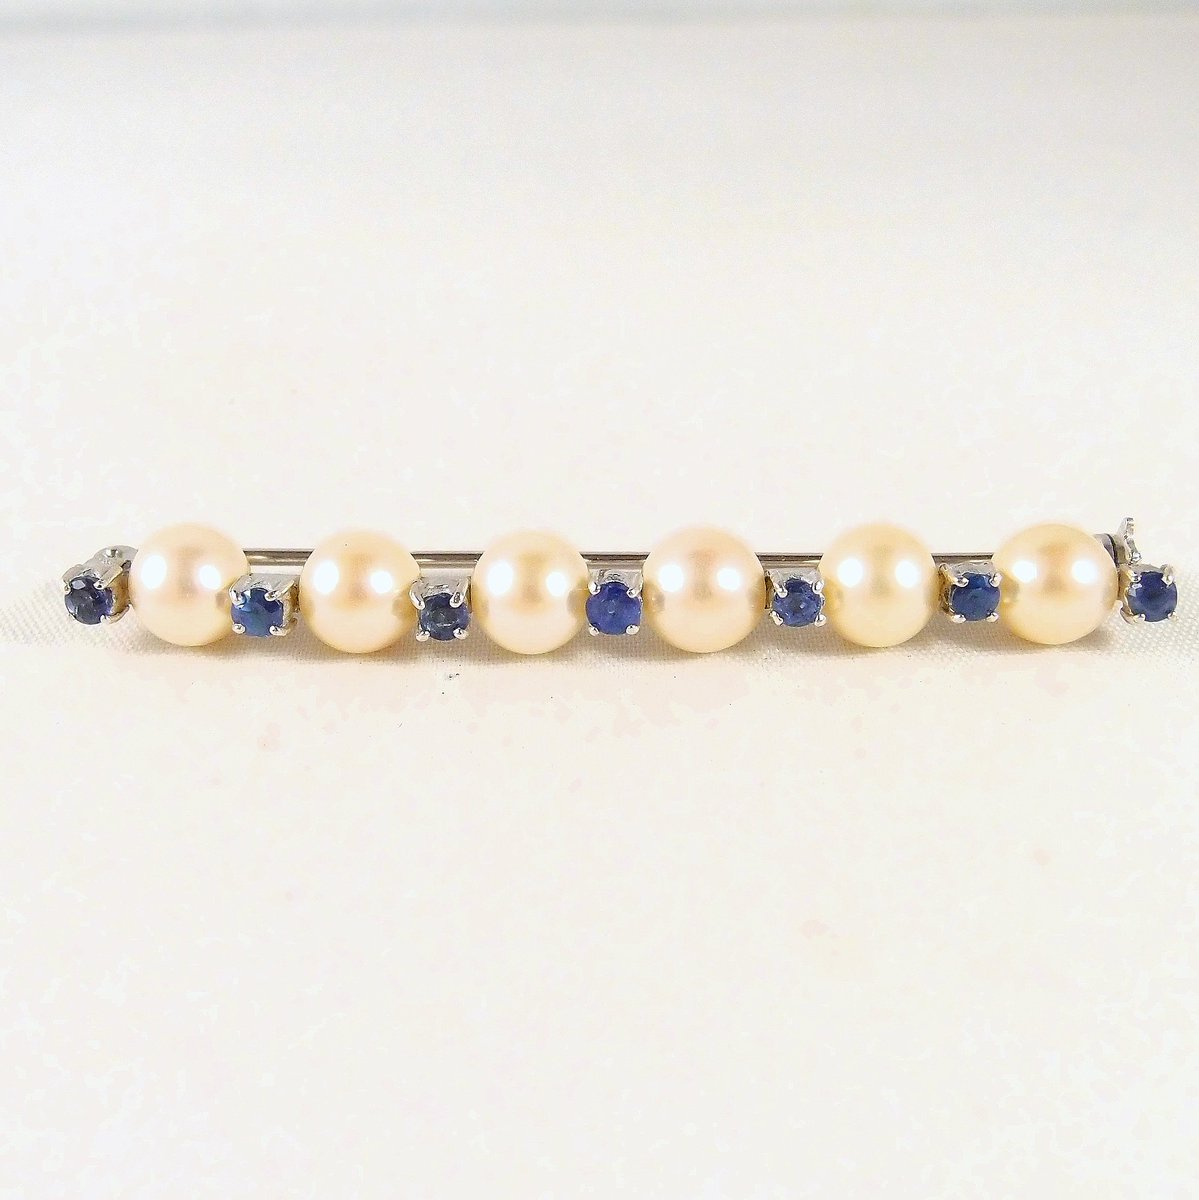 6 gorgeous pearls enhanced with 7 natural sapphires on an 18K solid gold bar brooch Edwardian fine stamped pin Perfect bridal jewelry #pearlsofinstagram pic.twitter.com/QuMHZcSz3e